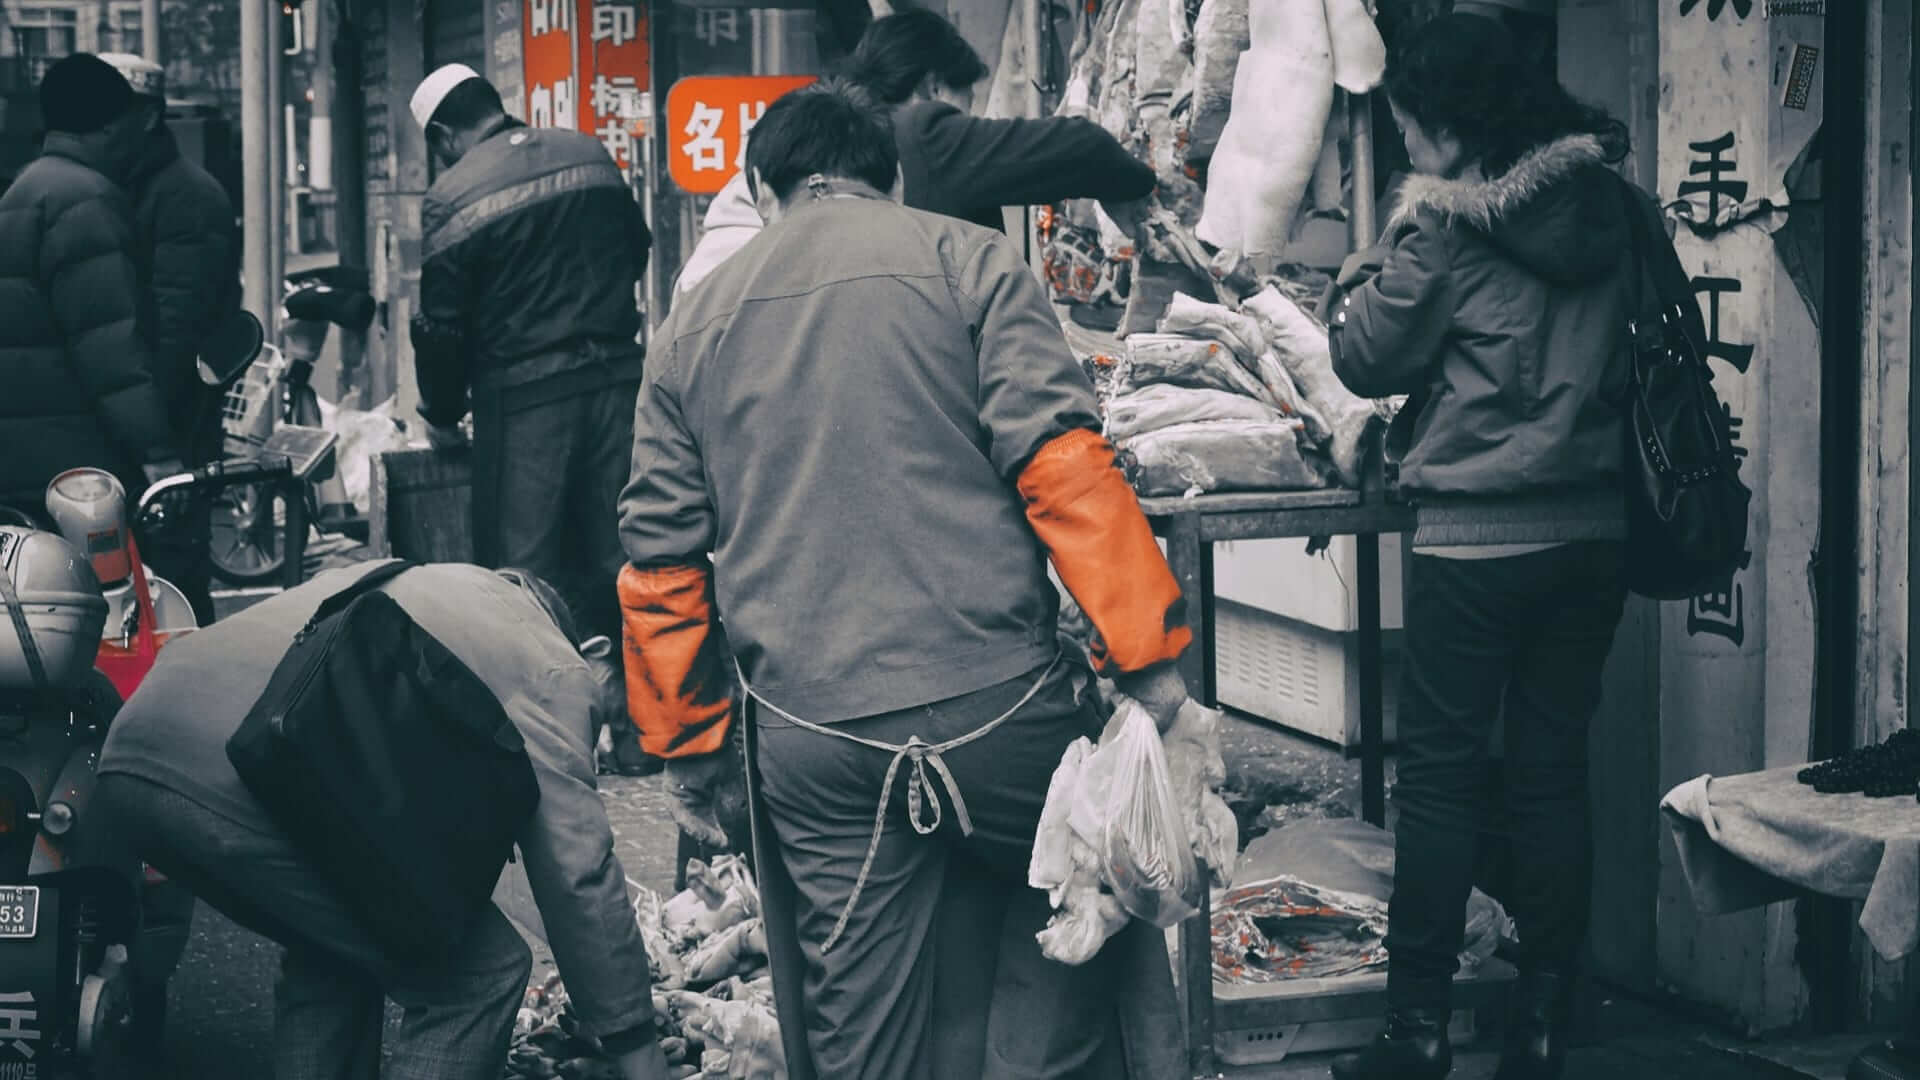 People are bargening at a market in Shanghai.